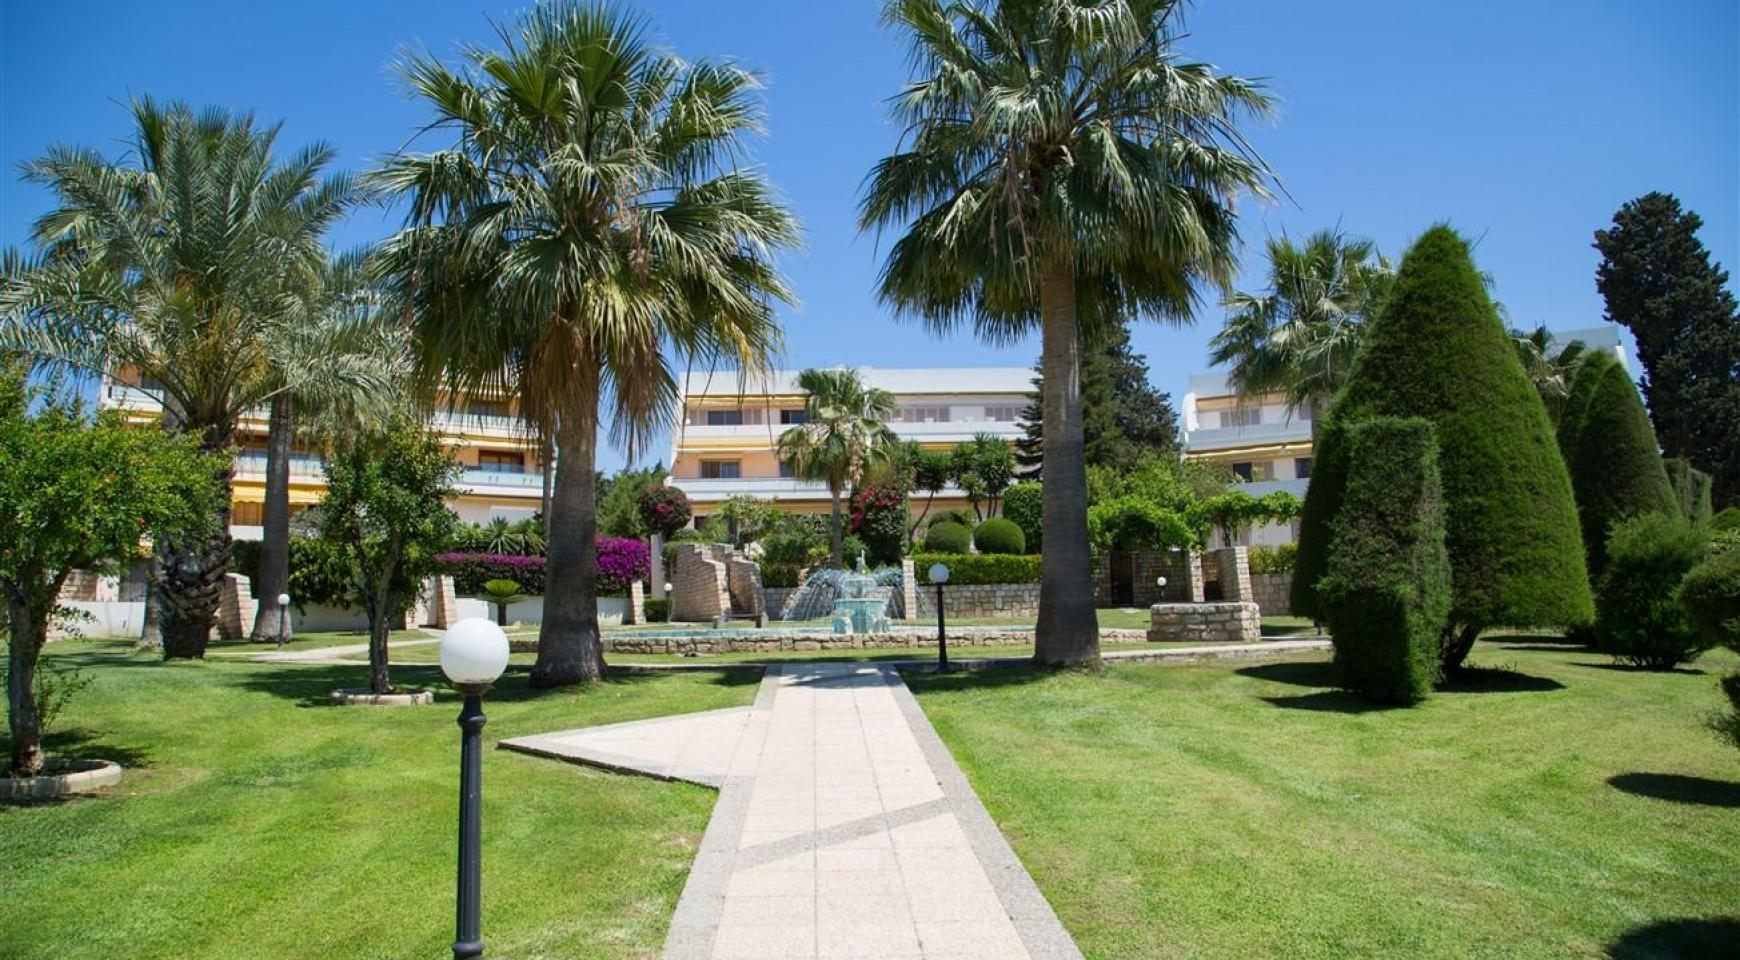 3 Bedroom Apartment in a Gated Complex by the Sea - 7